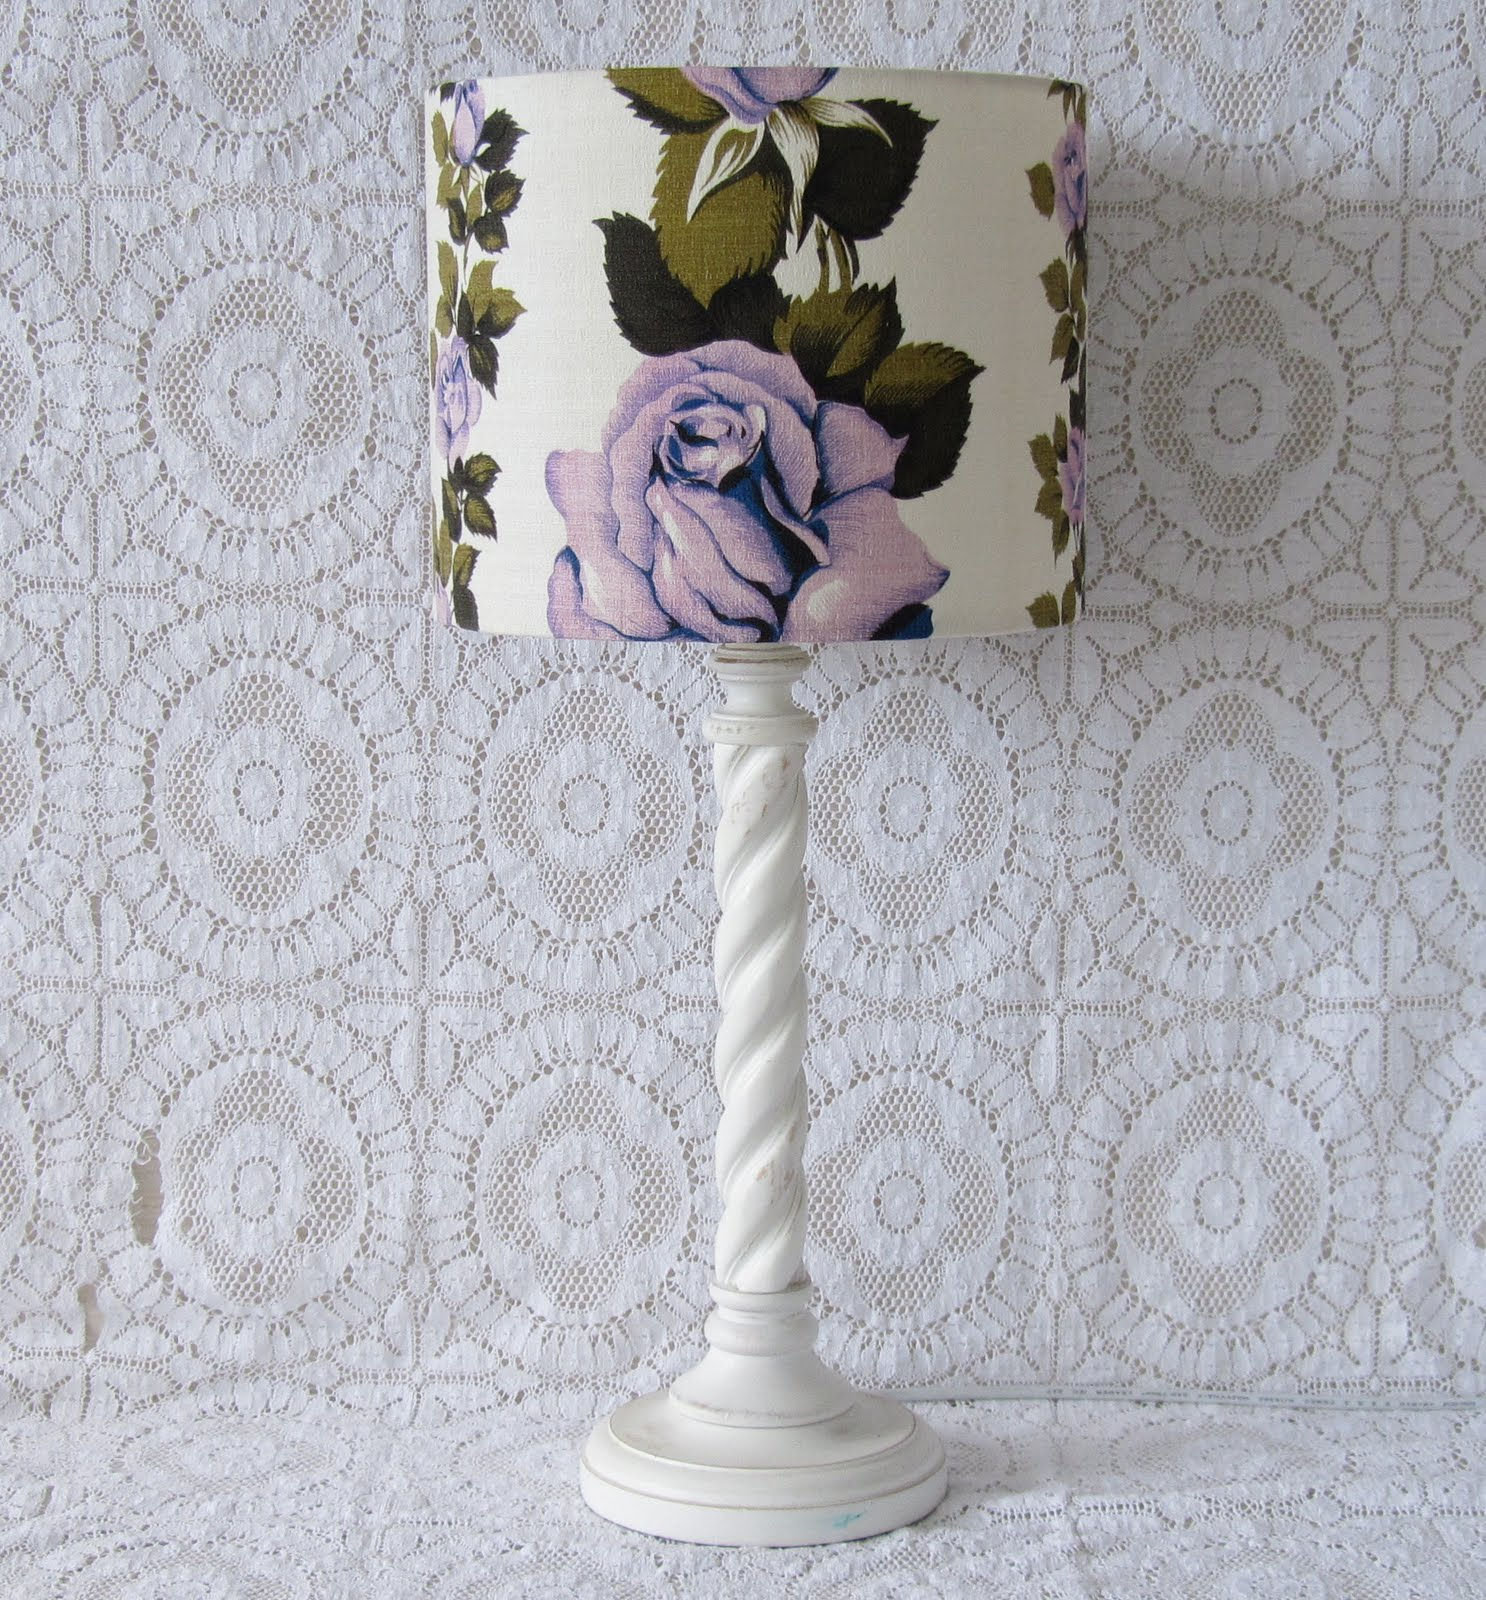 Small Things Simple Pleasures: How to make a lampshade